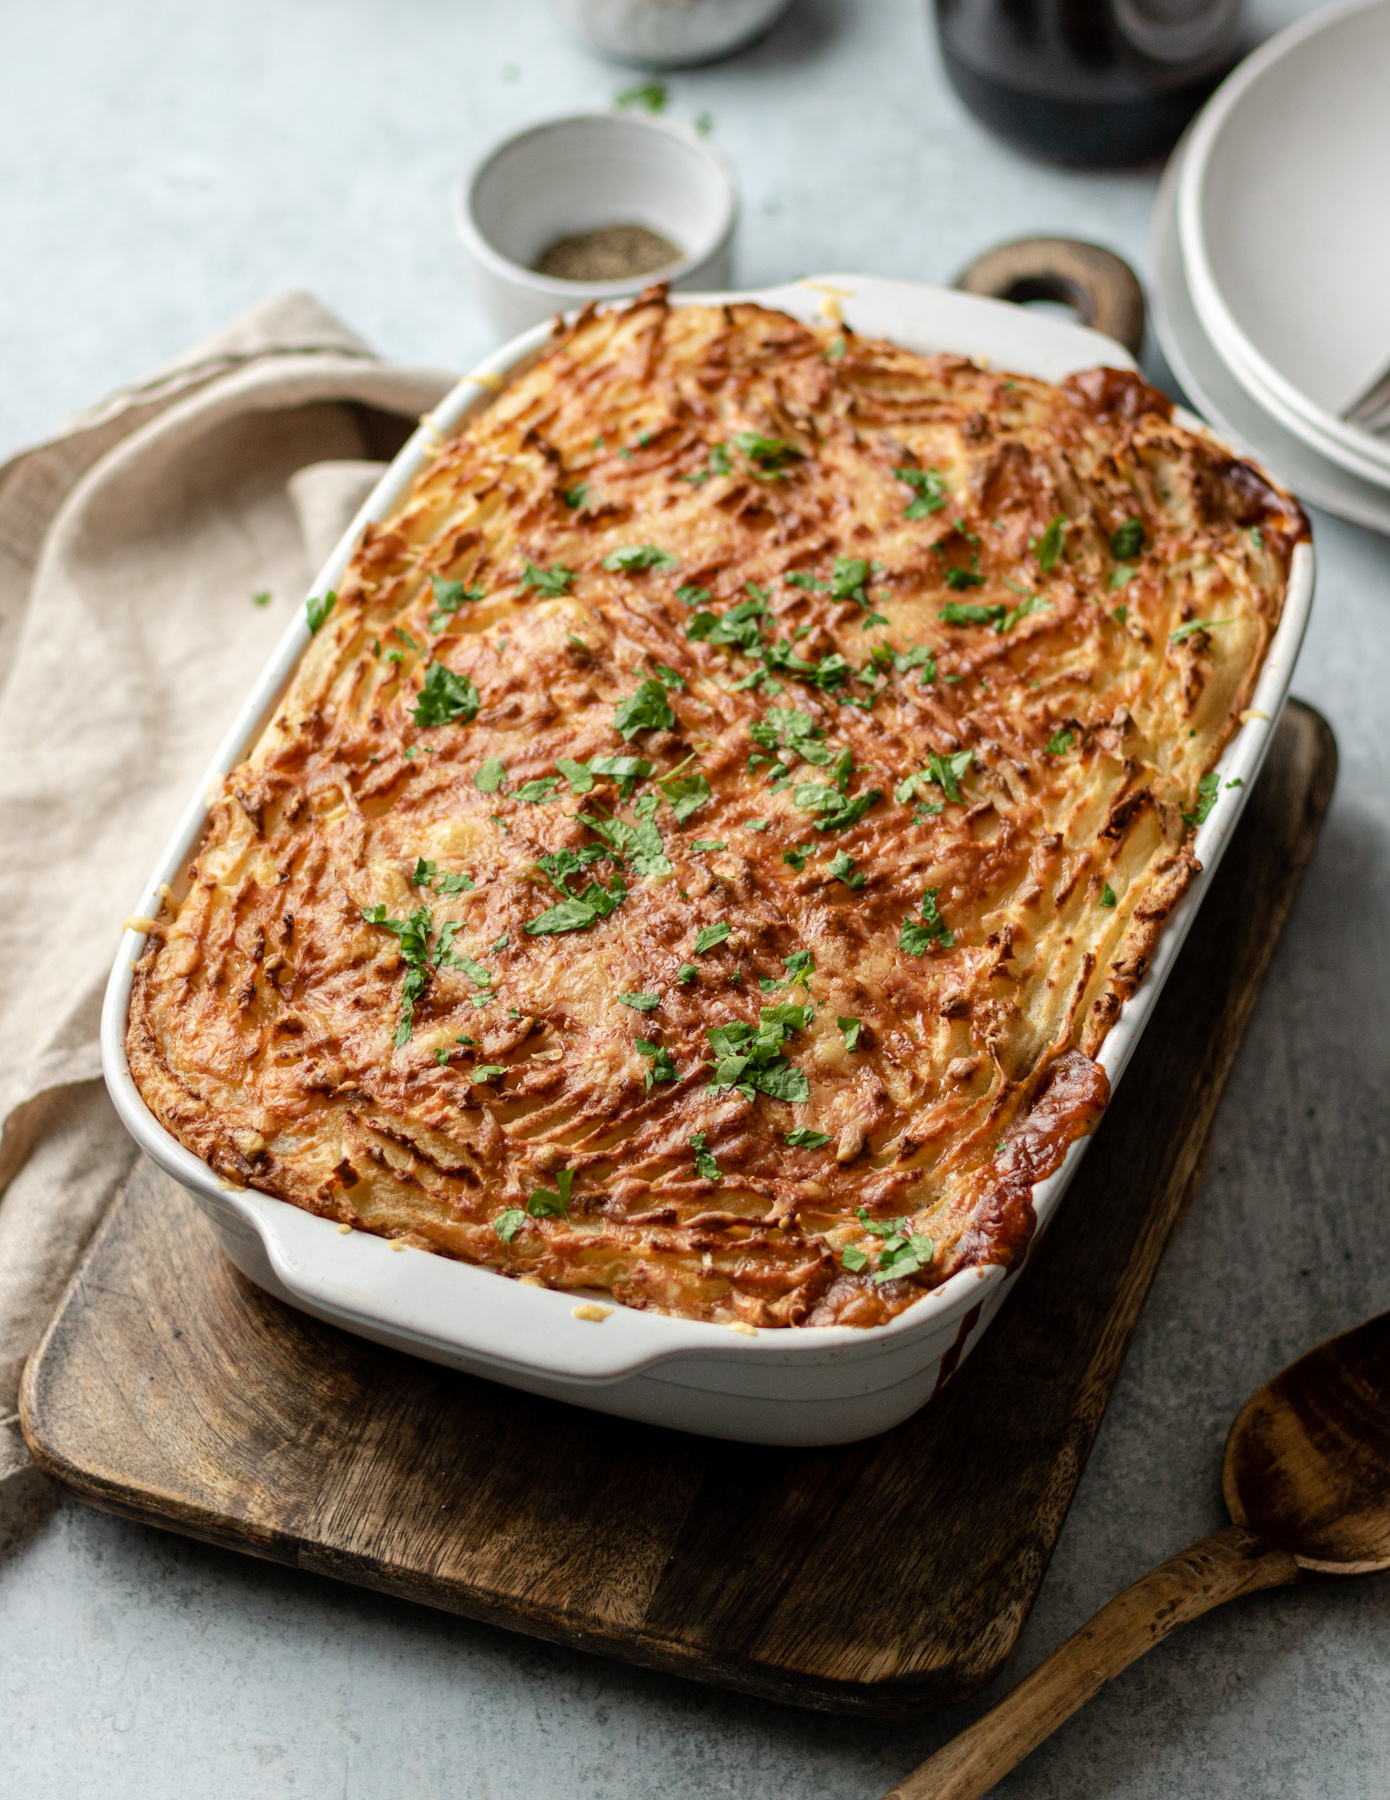 Quorn Cottage Pie with cheesy potato topping.